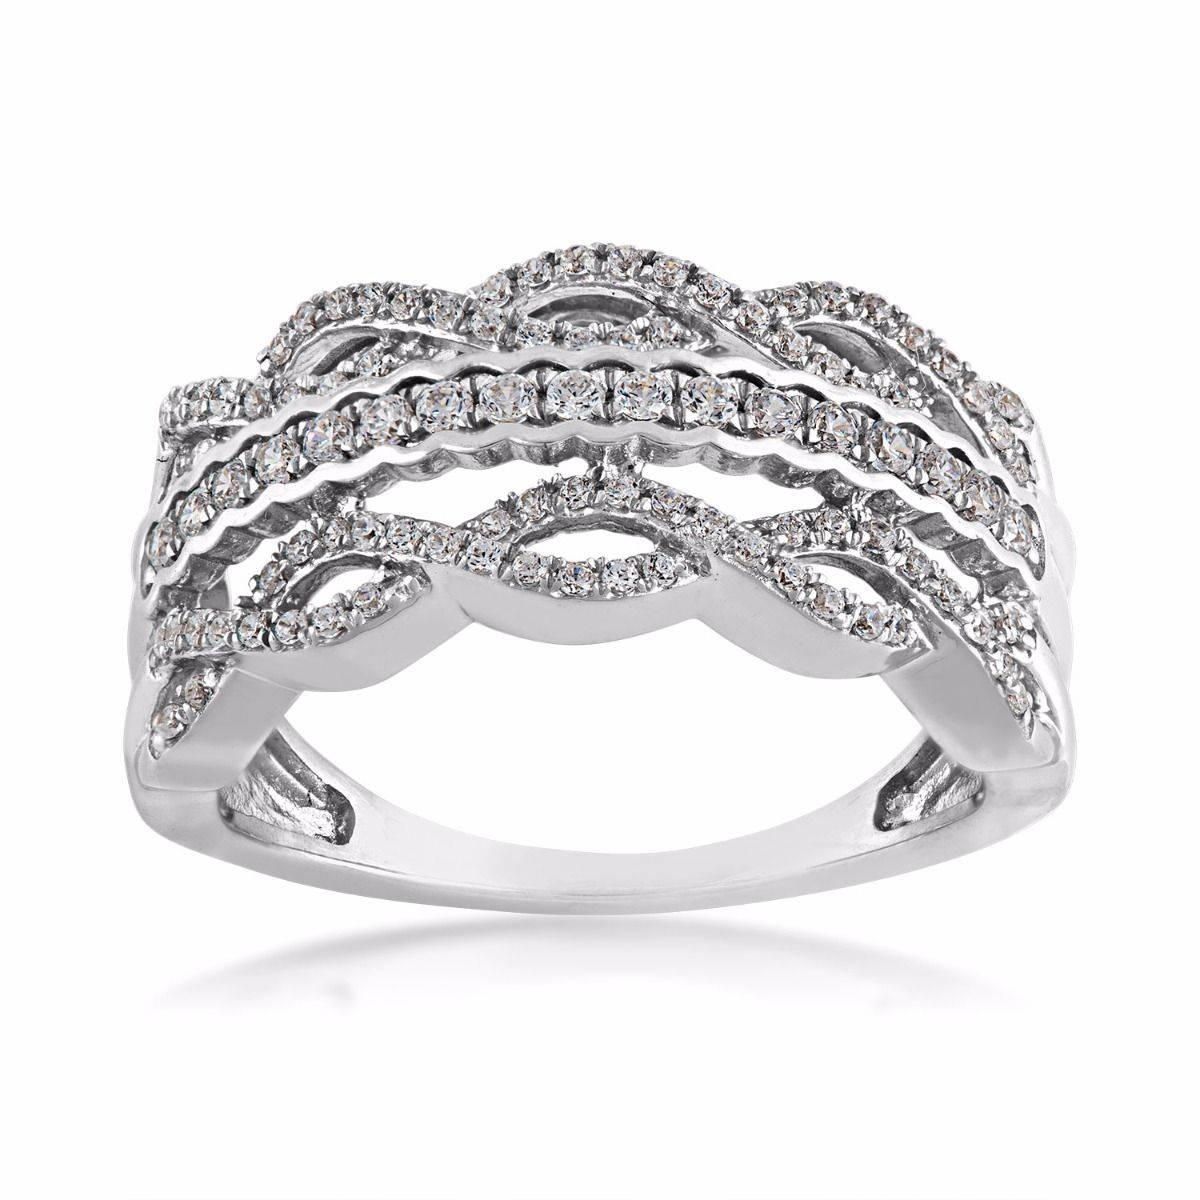 Ladies Diamond Anniversary Ring | Riddle's Jewelry With Regard To Best And Newest Gold Anniversary Rings (View 20 of 25)